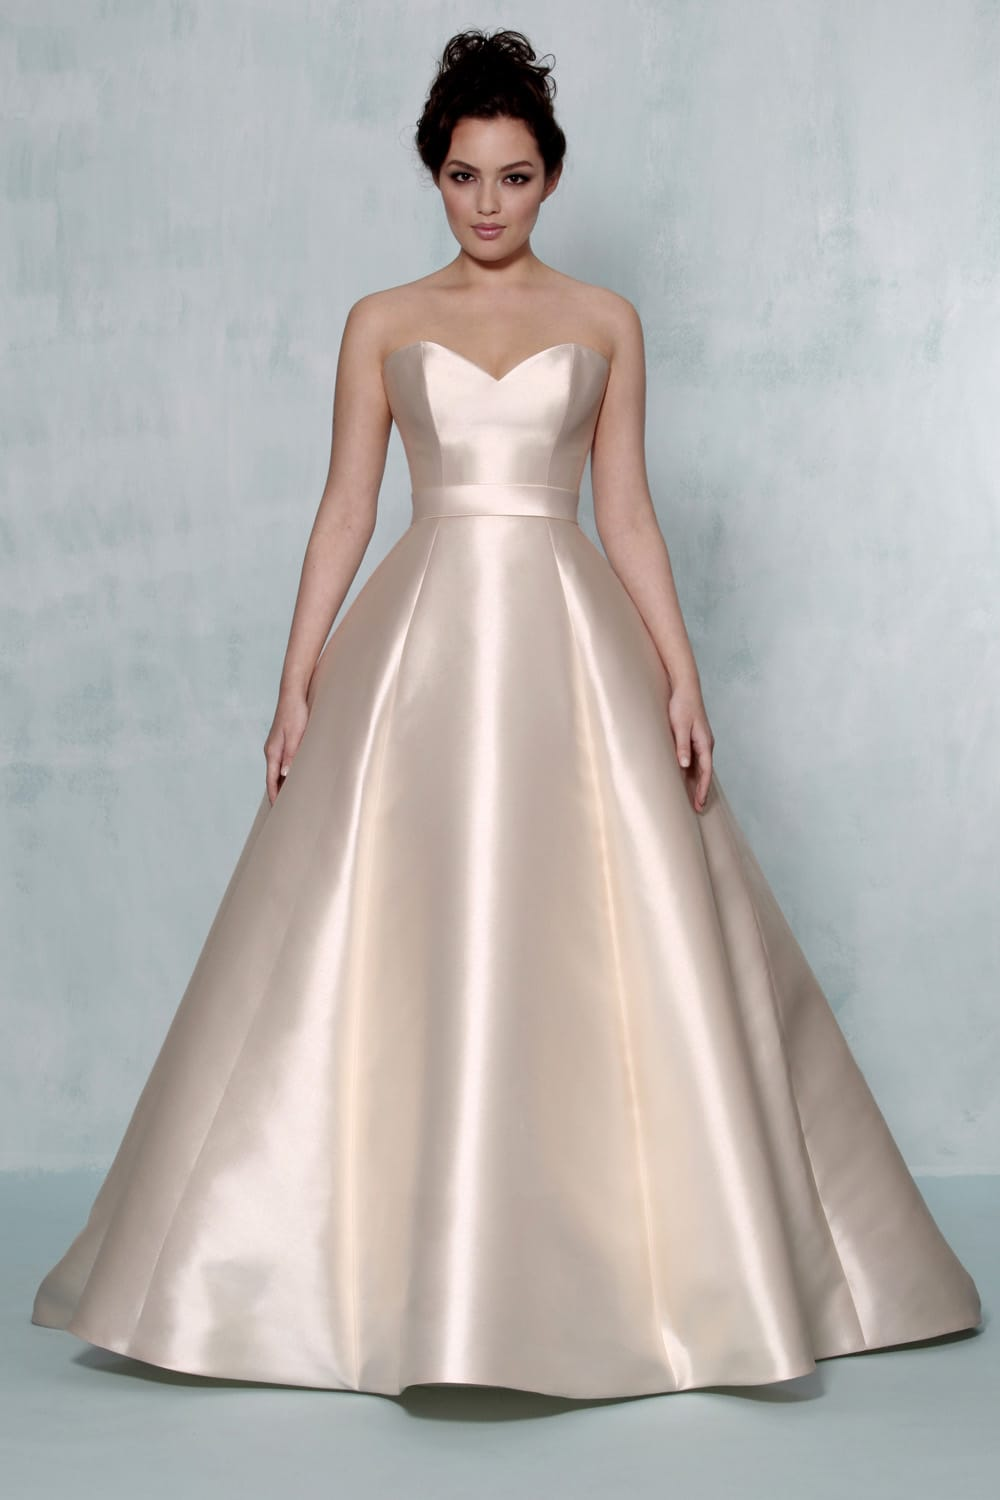 Augusta jones anna sell my wedding dress online sell for Sell wedding dress for free